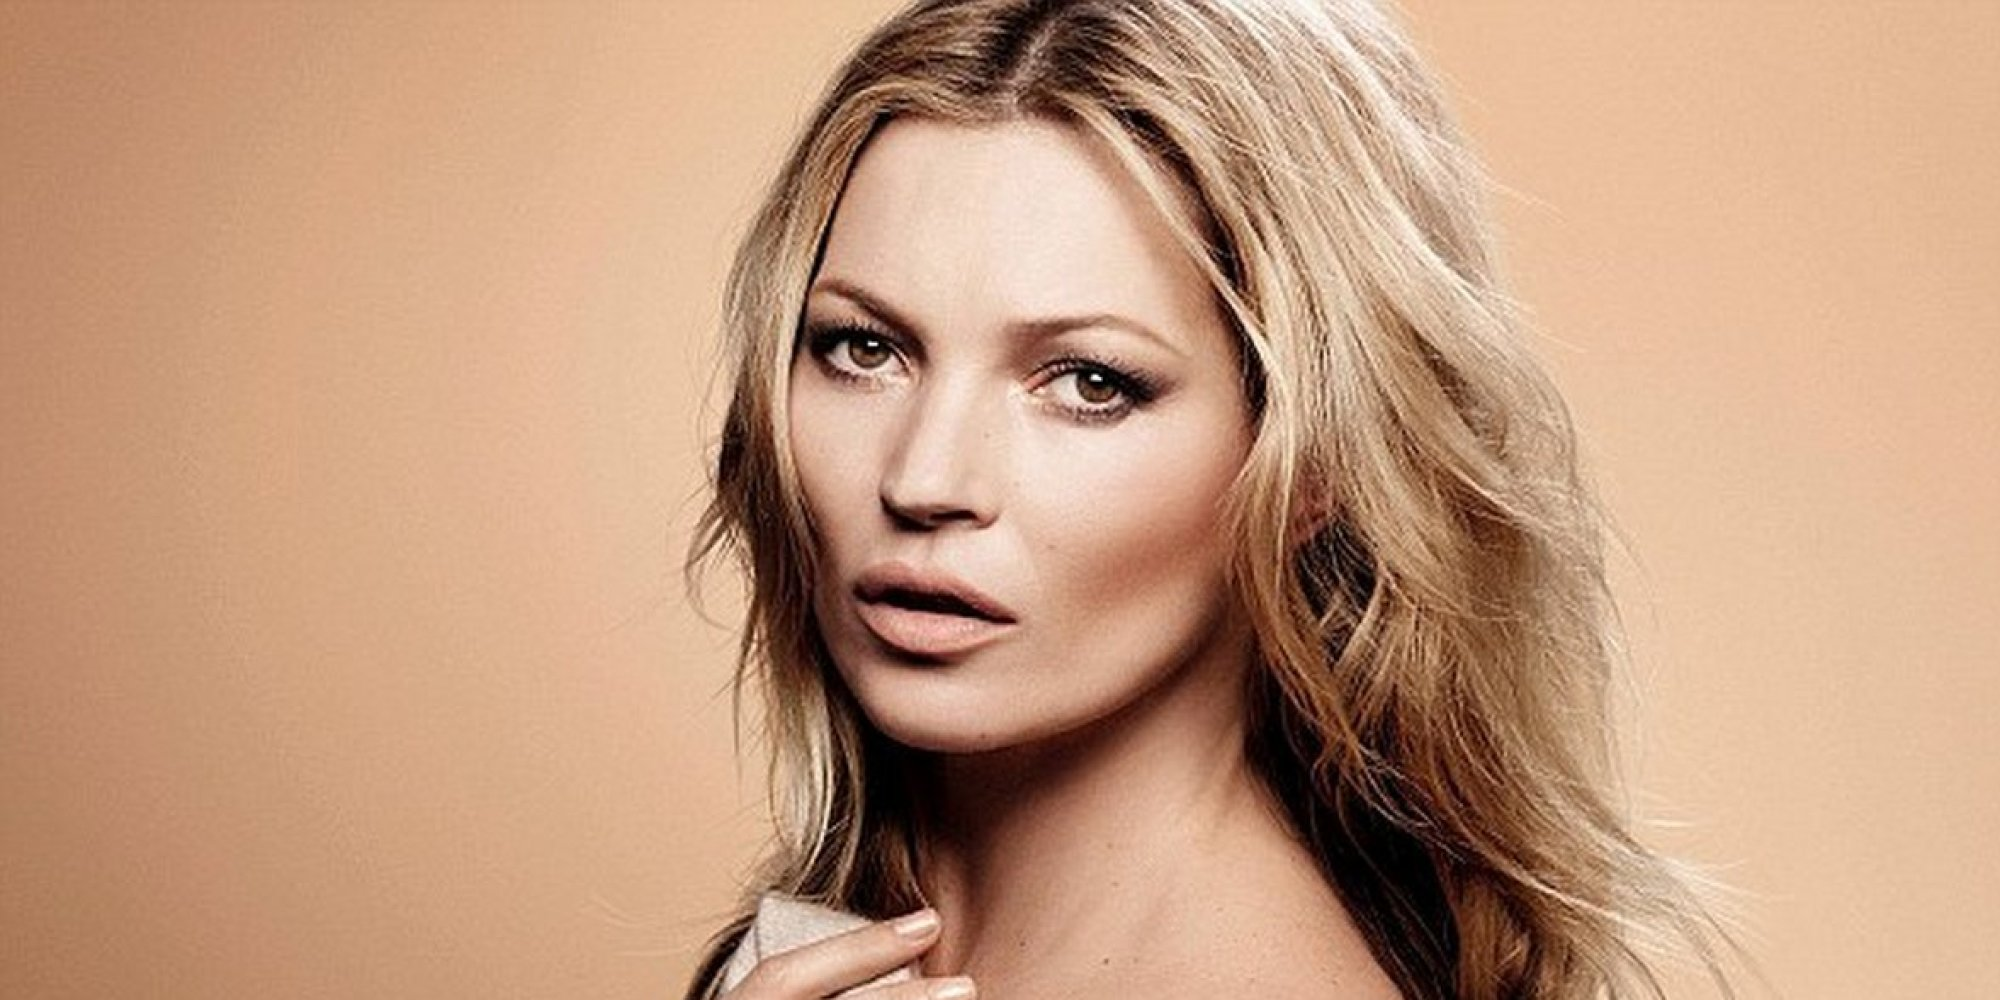 Kate Moss's private images leaked online